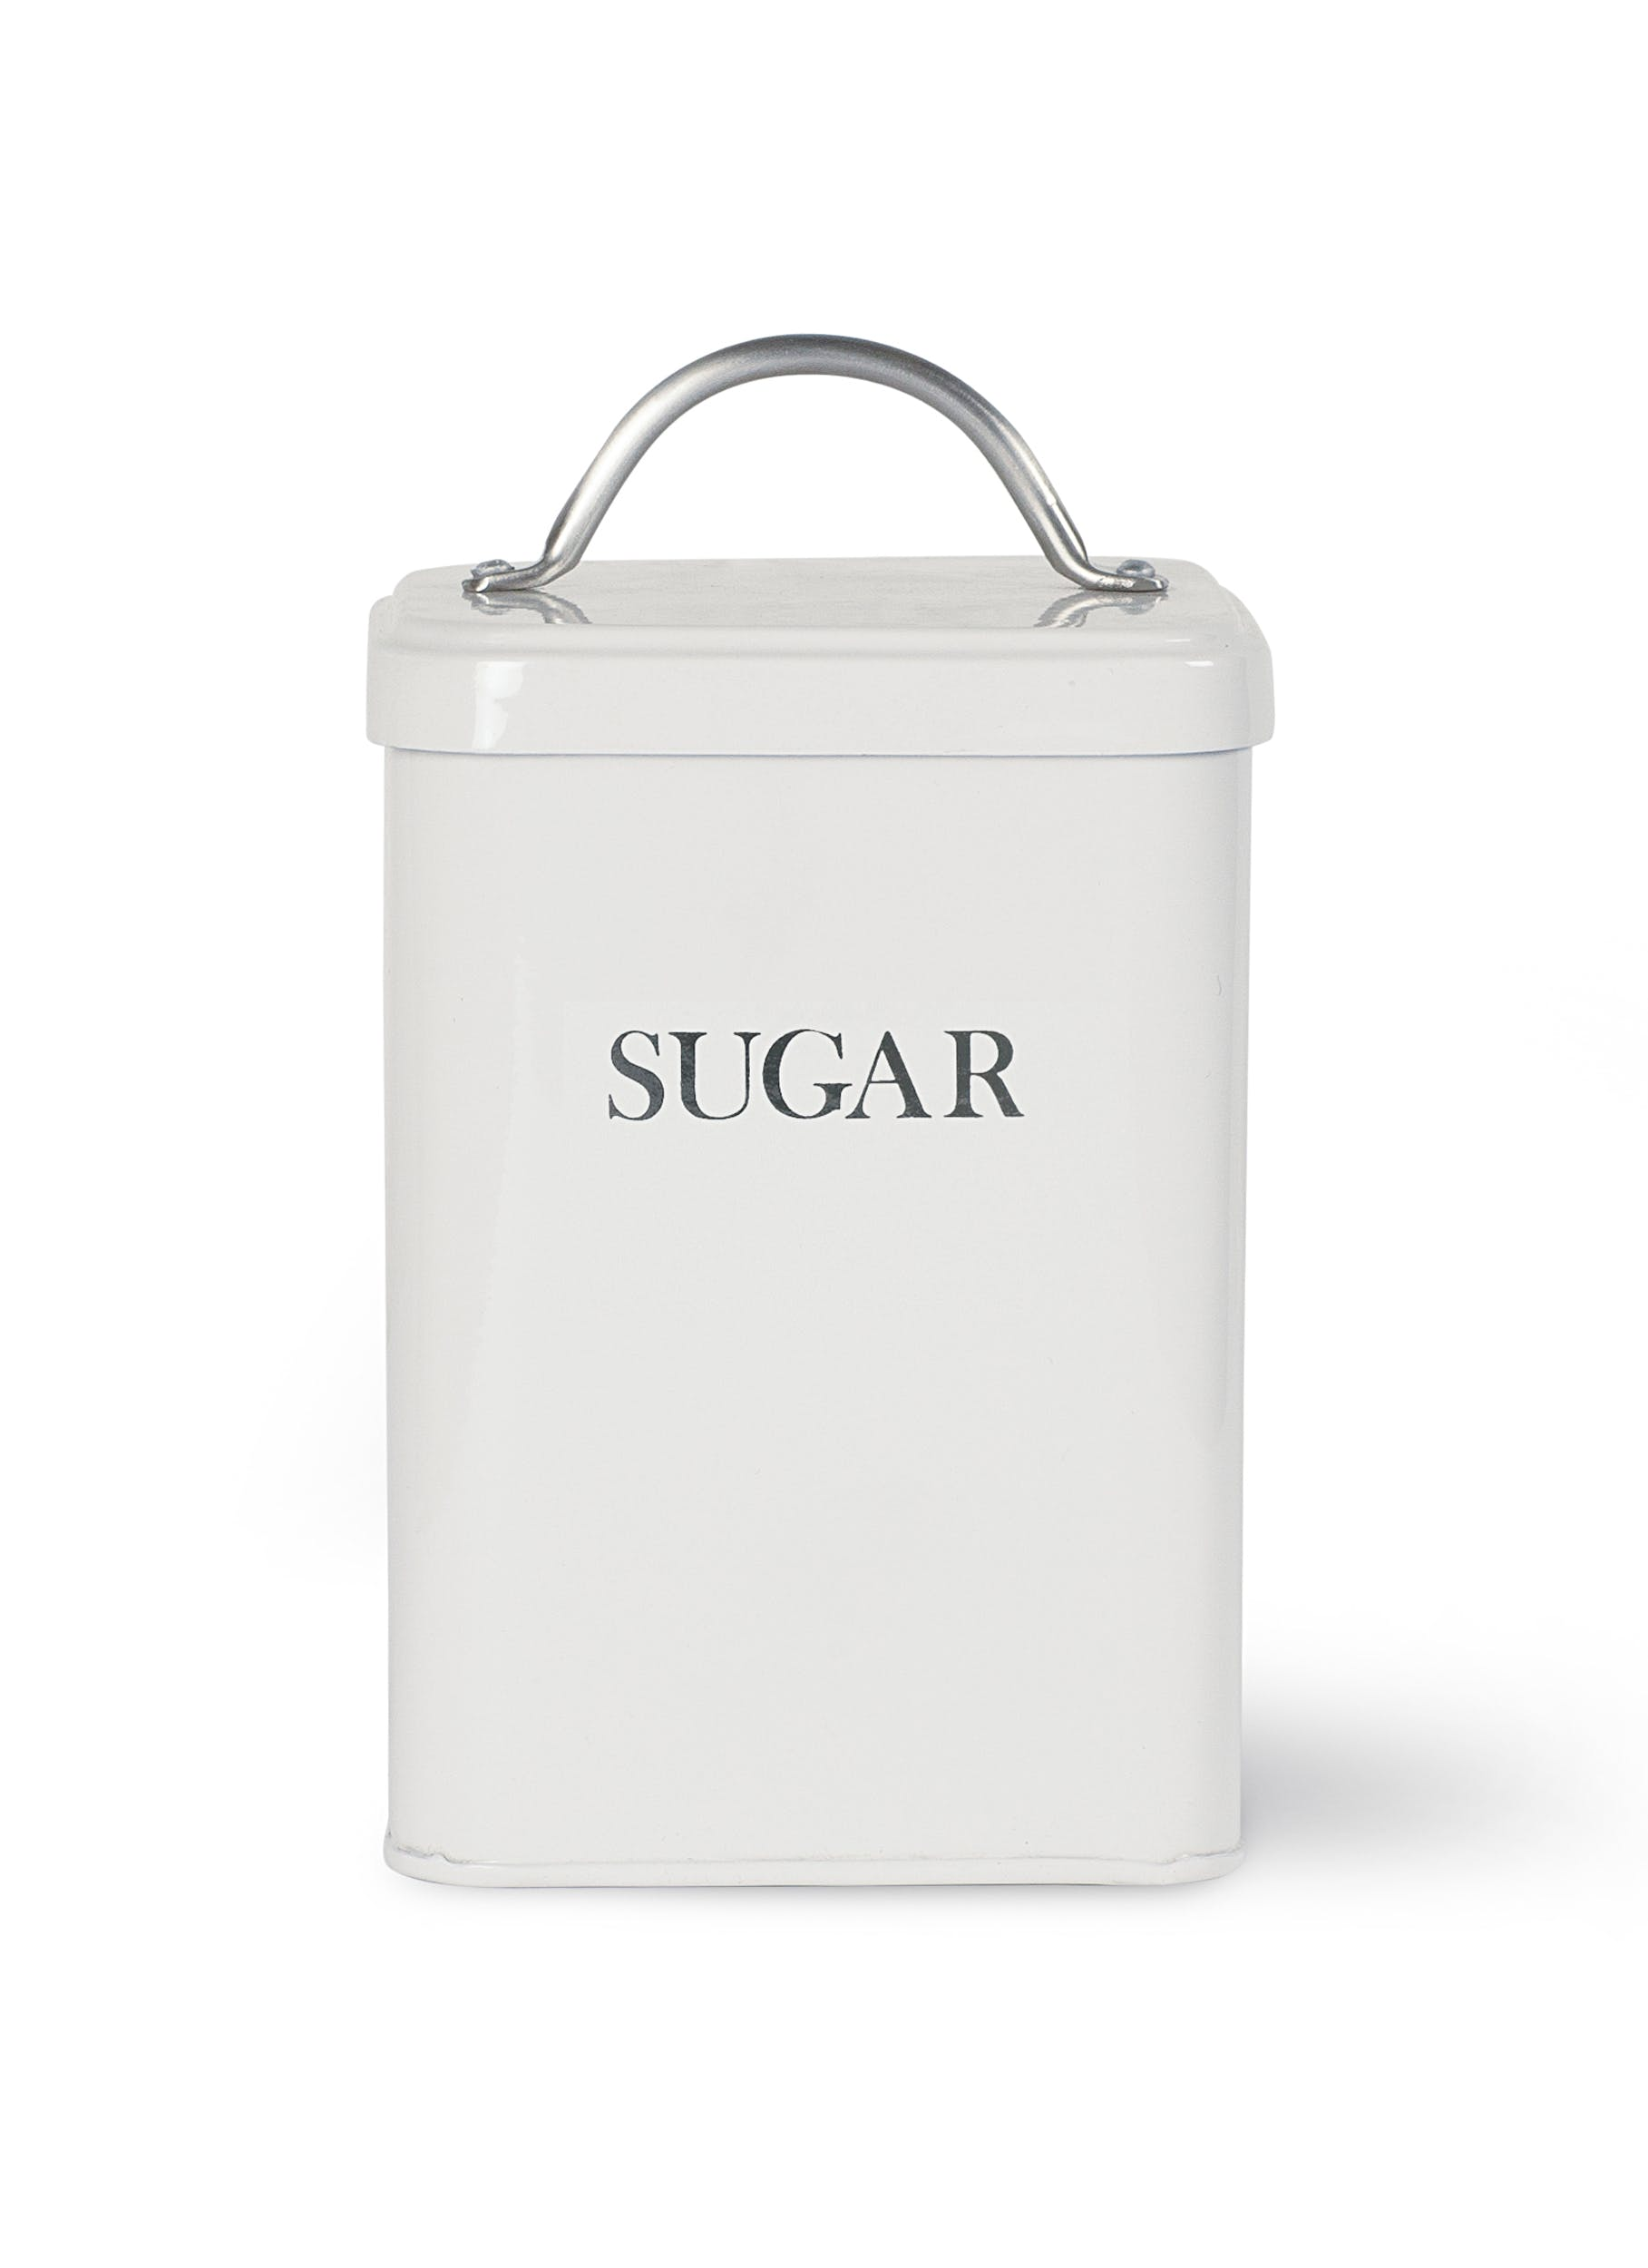 Steel Sugar Canister in Grey, White or Cream | Garden Trading